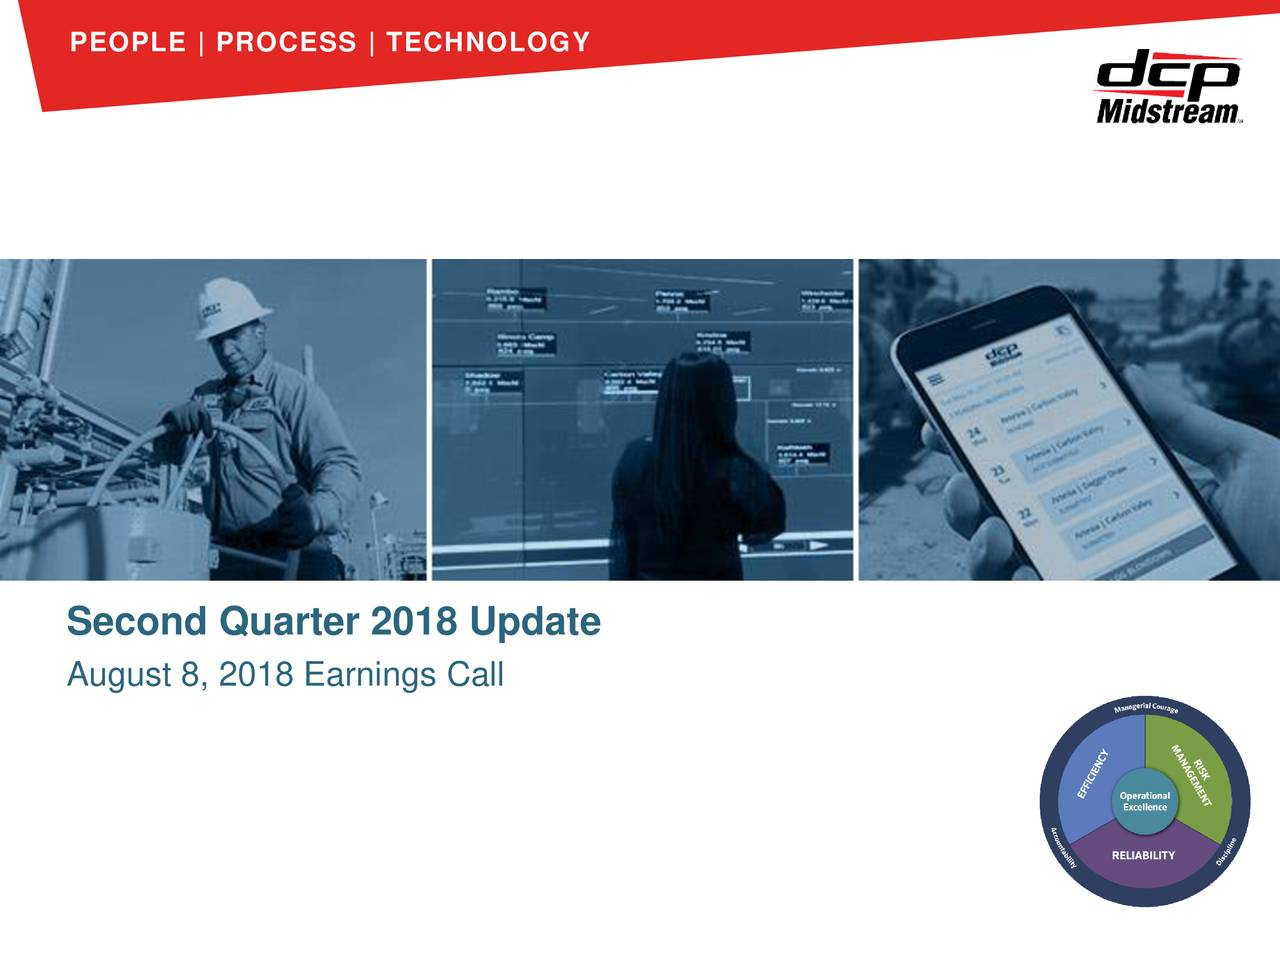 Second Quarter 2018 Update August 8, 2018 Earnings Call